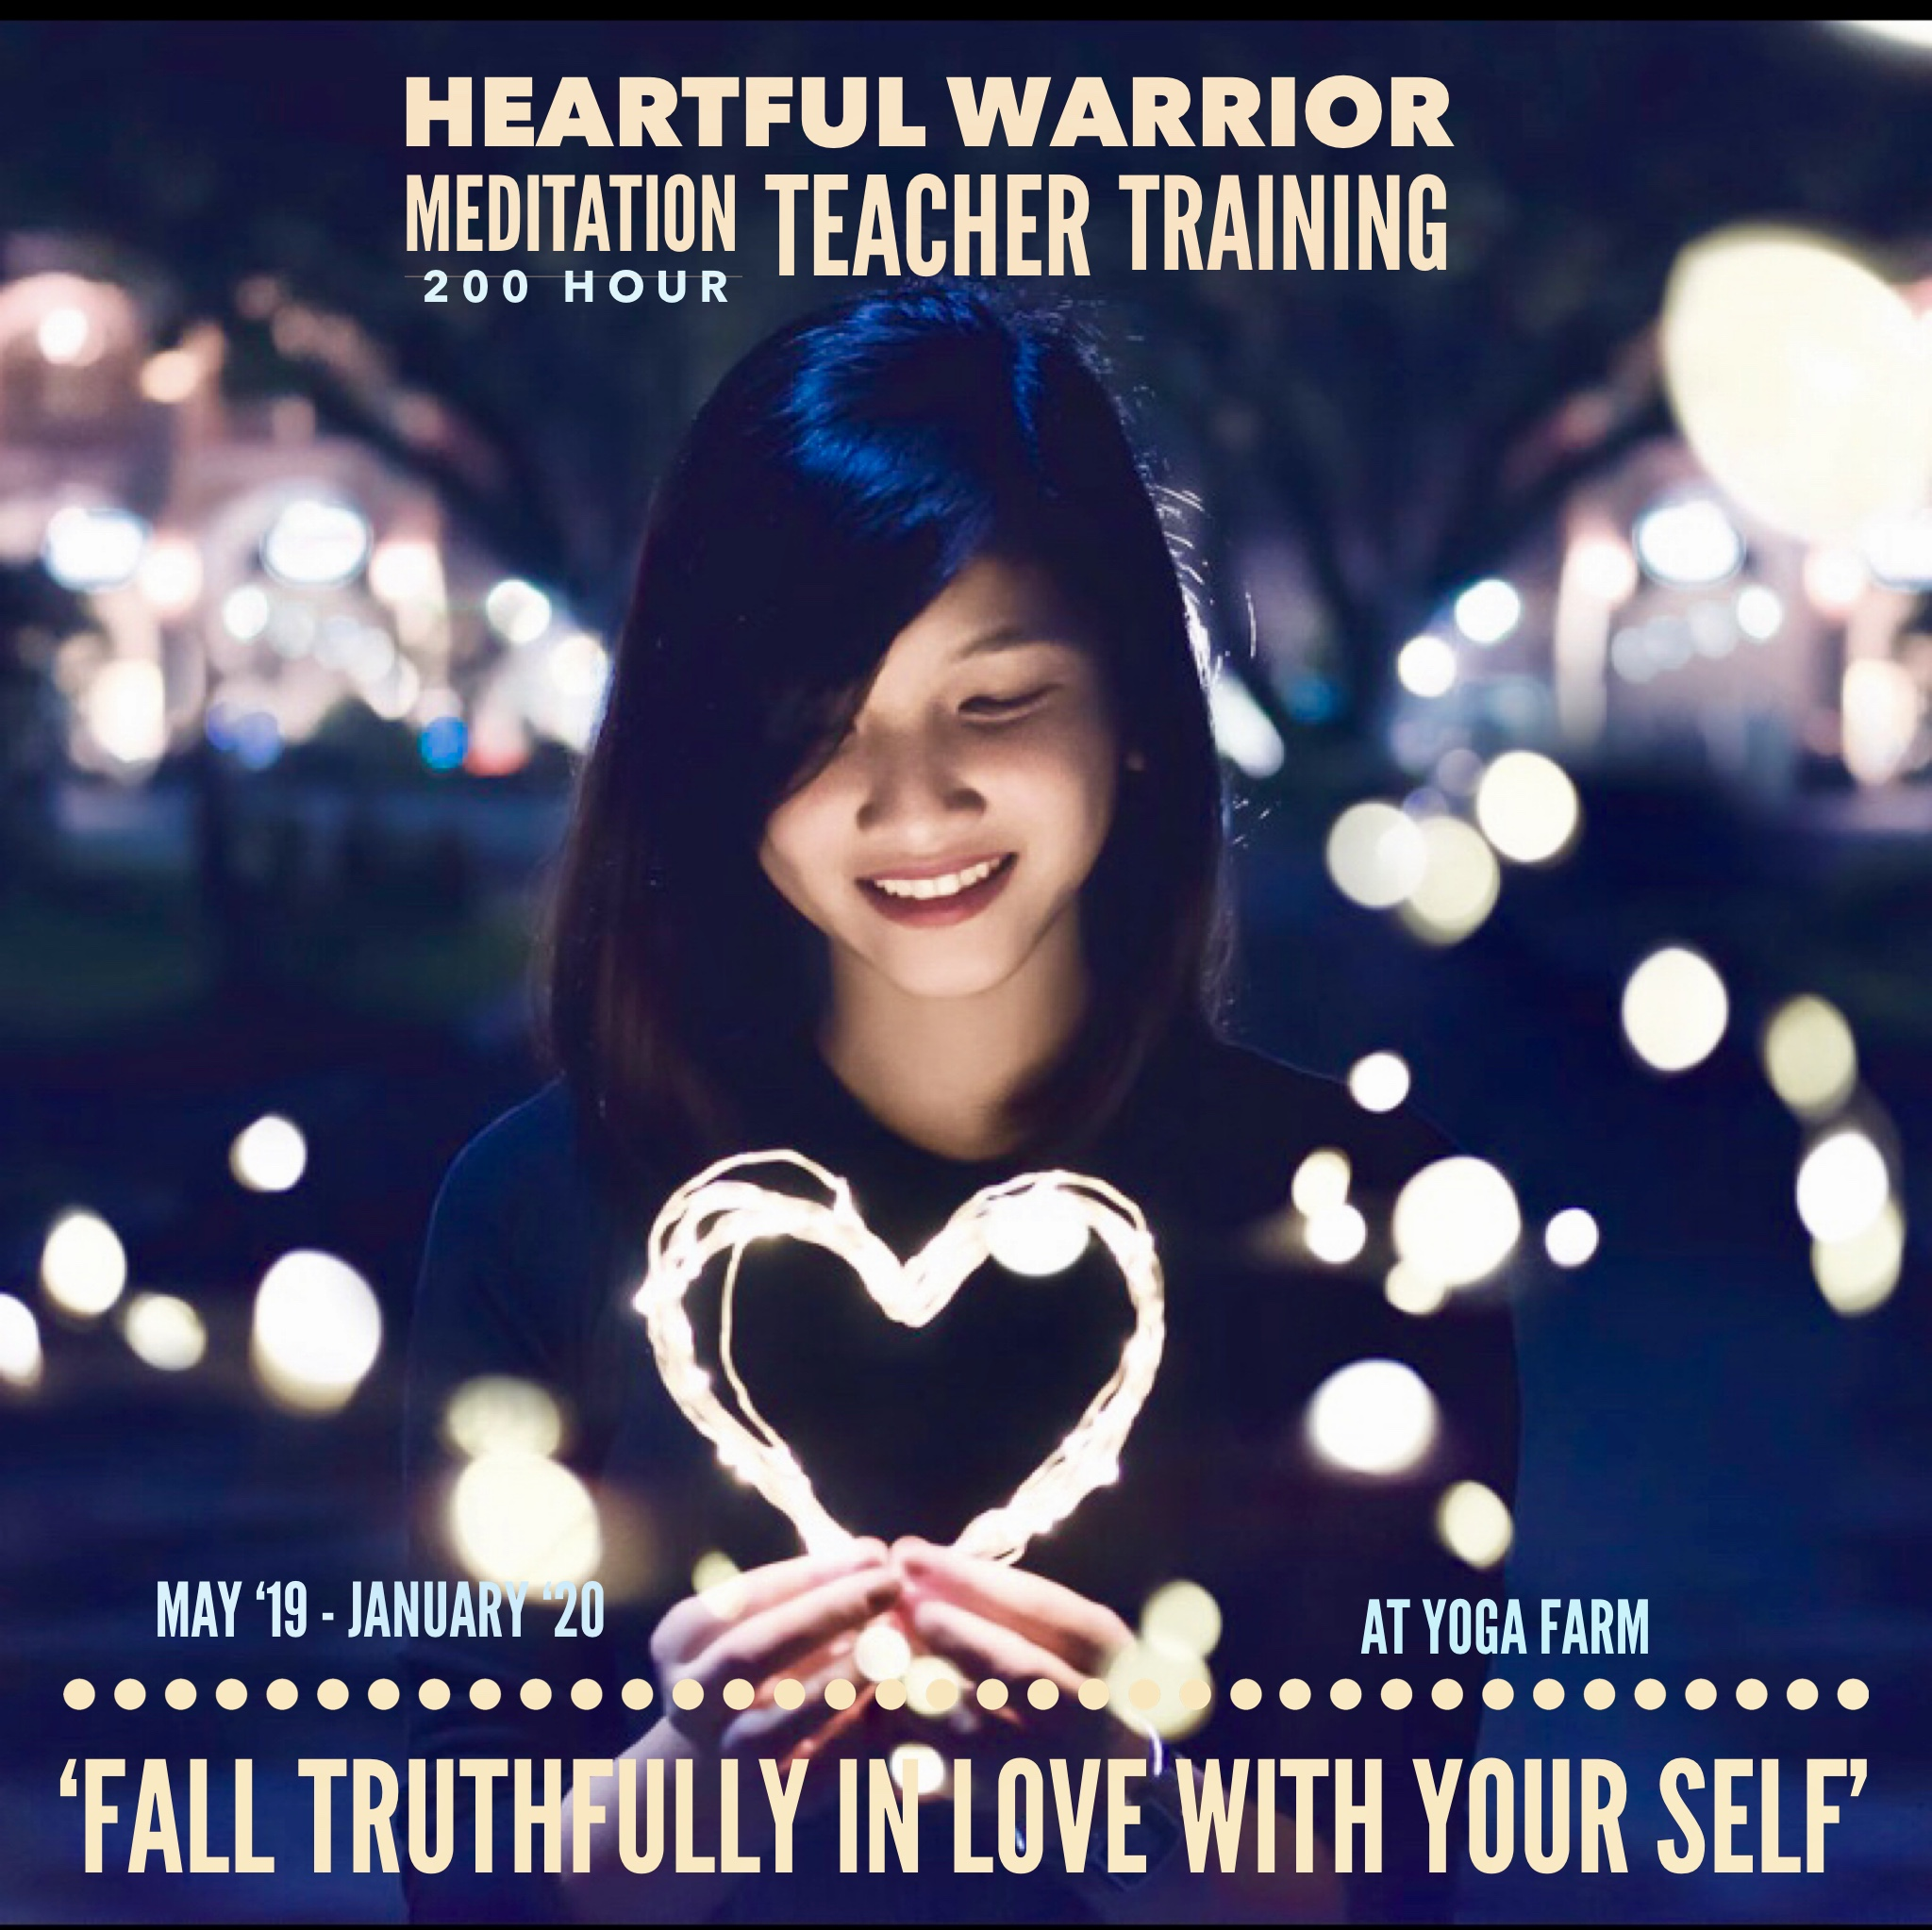 Our Heartful Warrior Course and Teacher Training will give you a direct experience of how to Live with Heartfulness